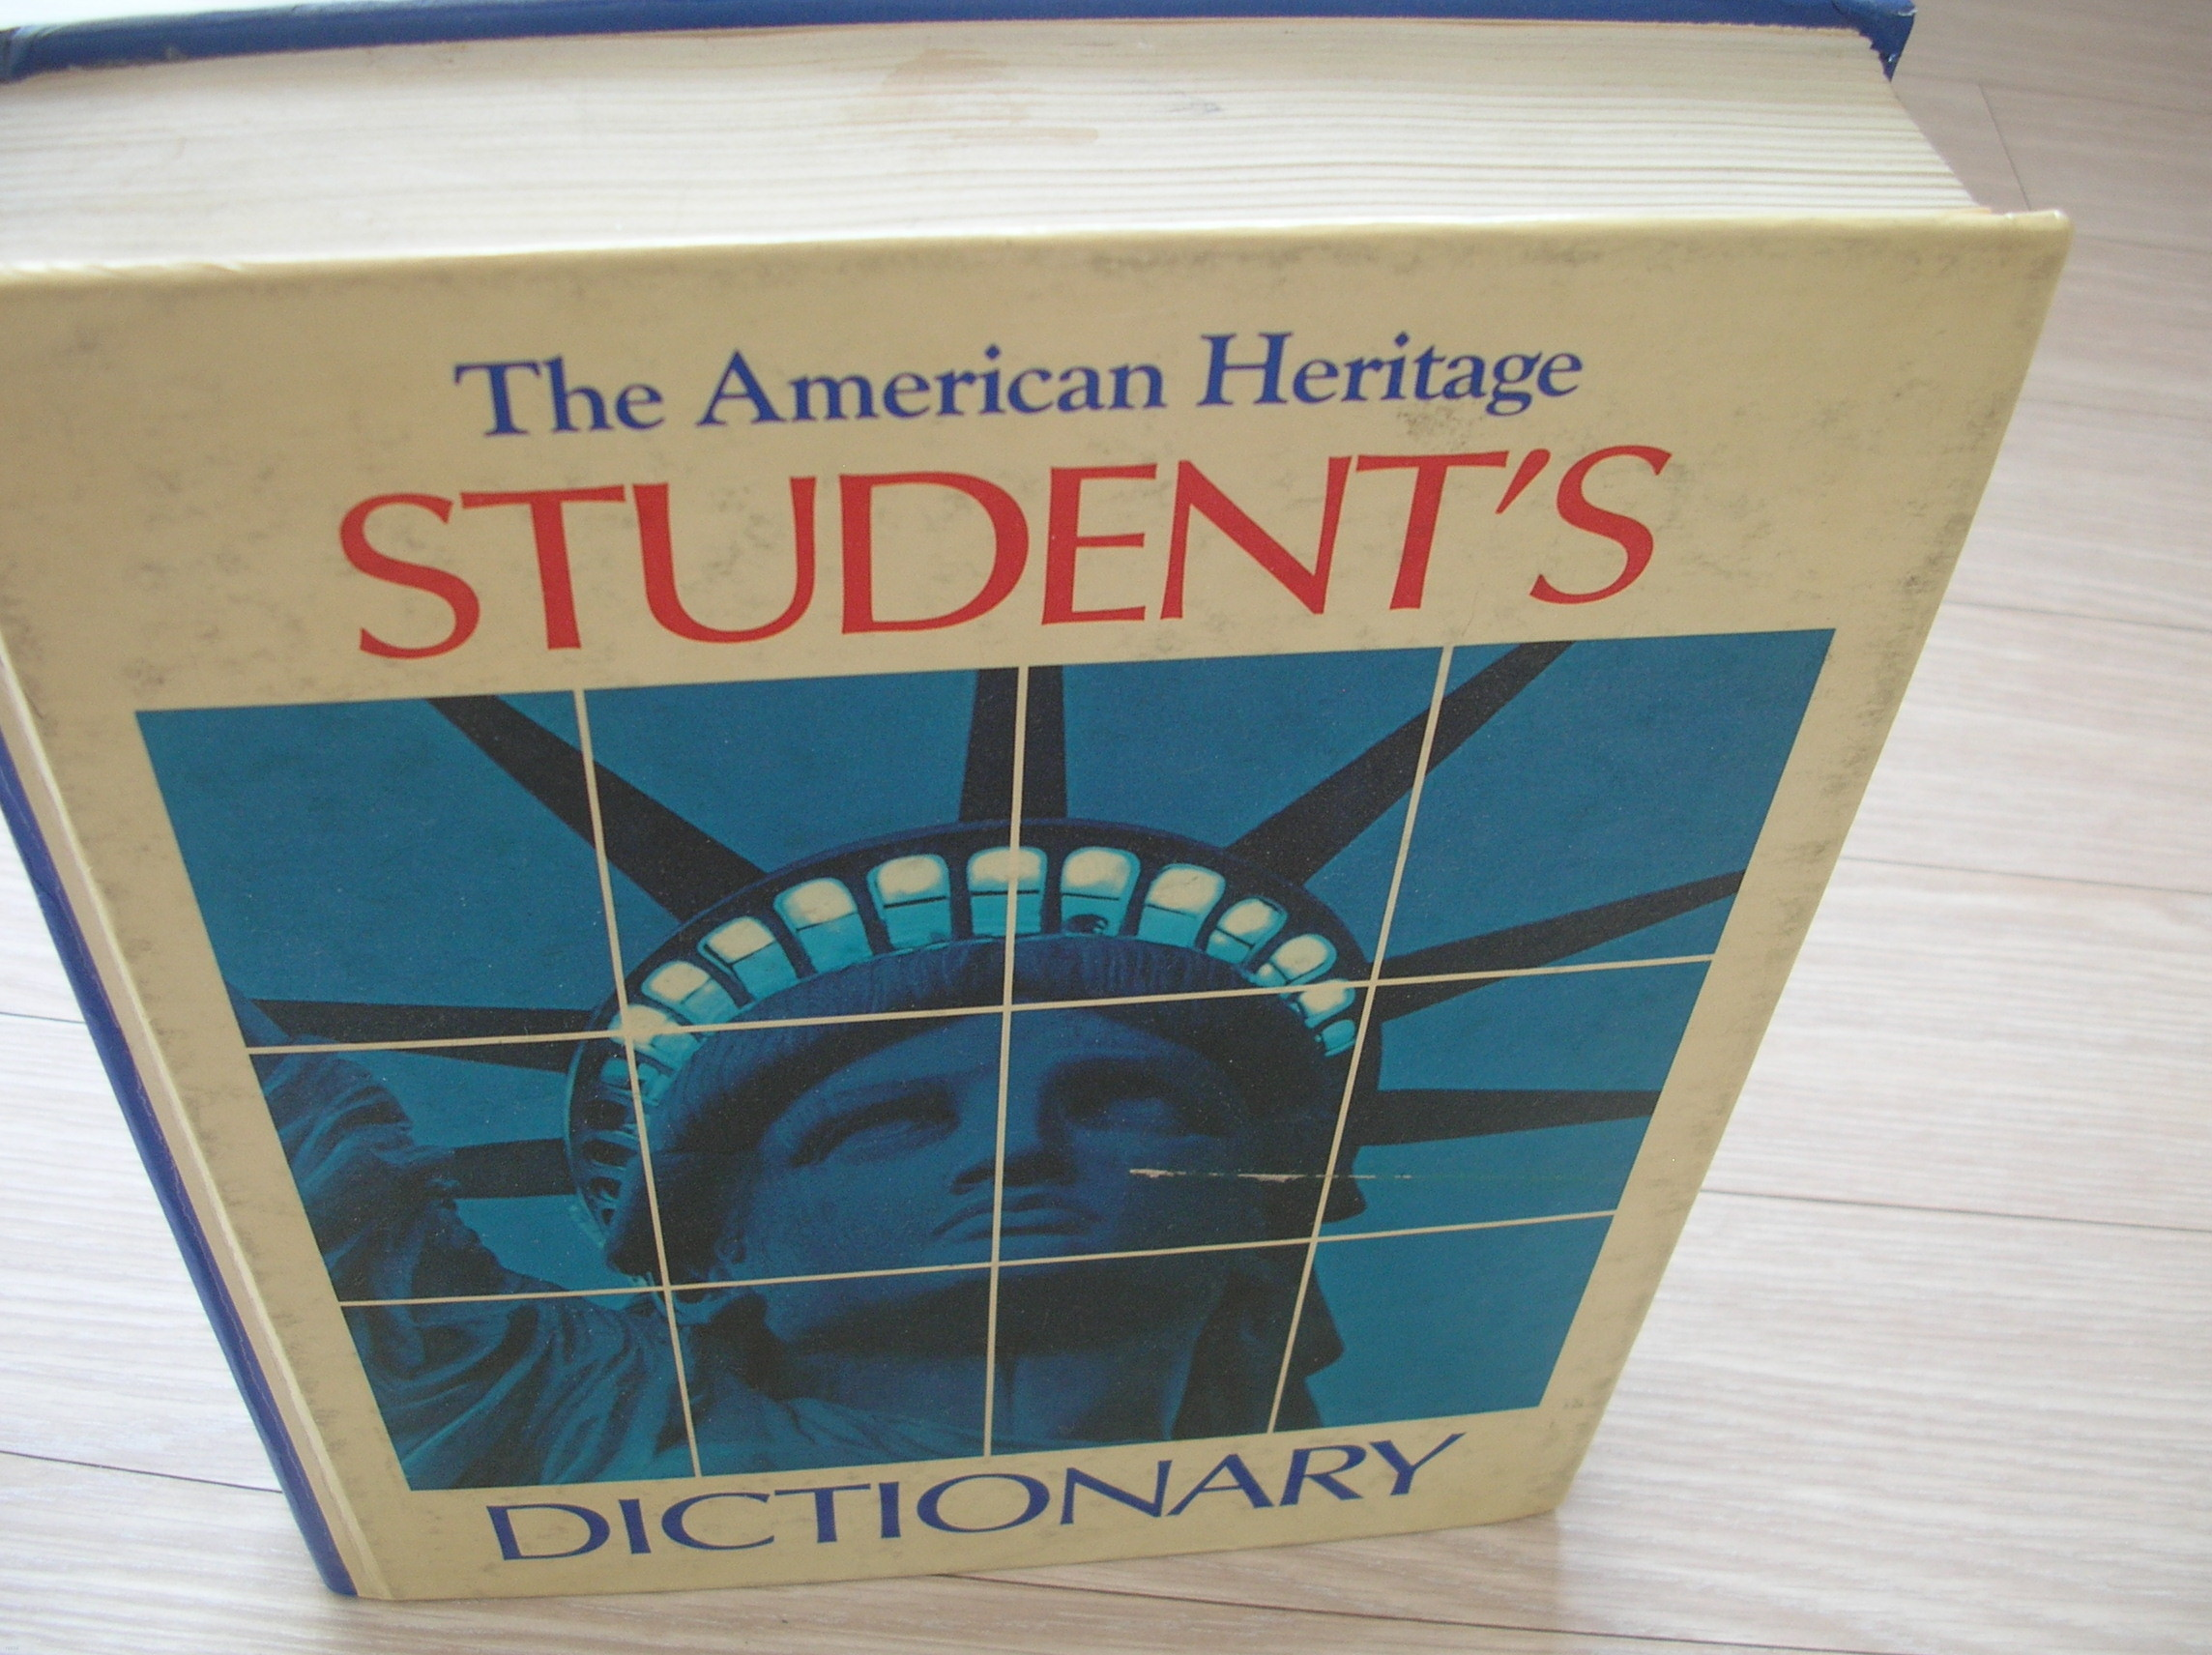 The American Heritage STUDENT'S DICTIONARY